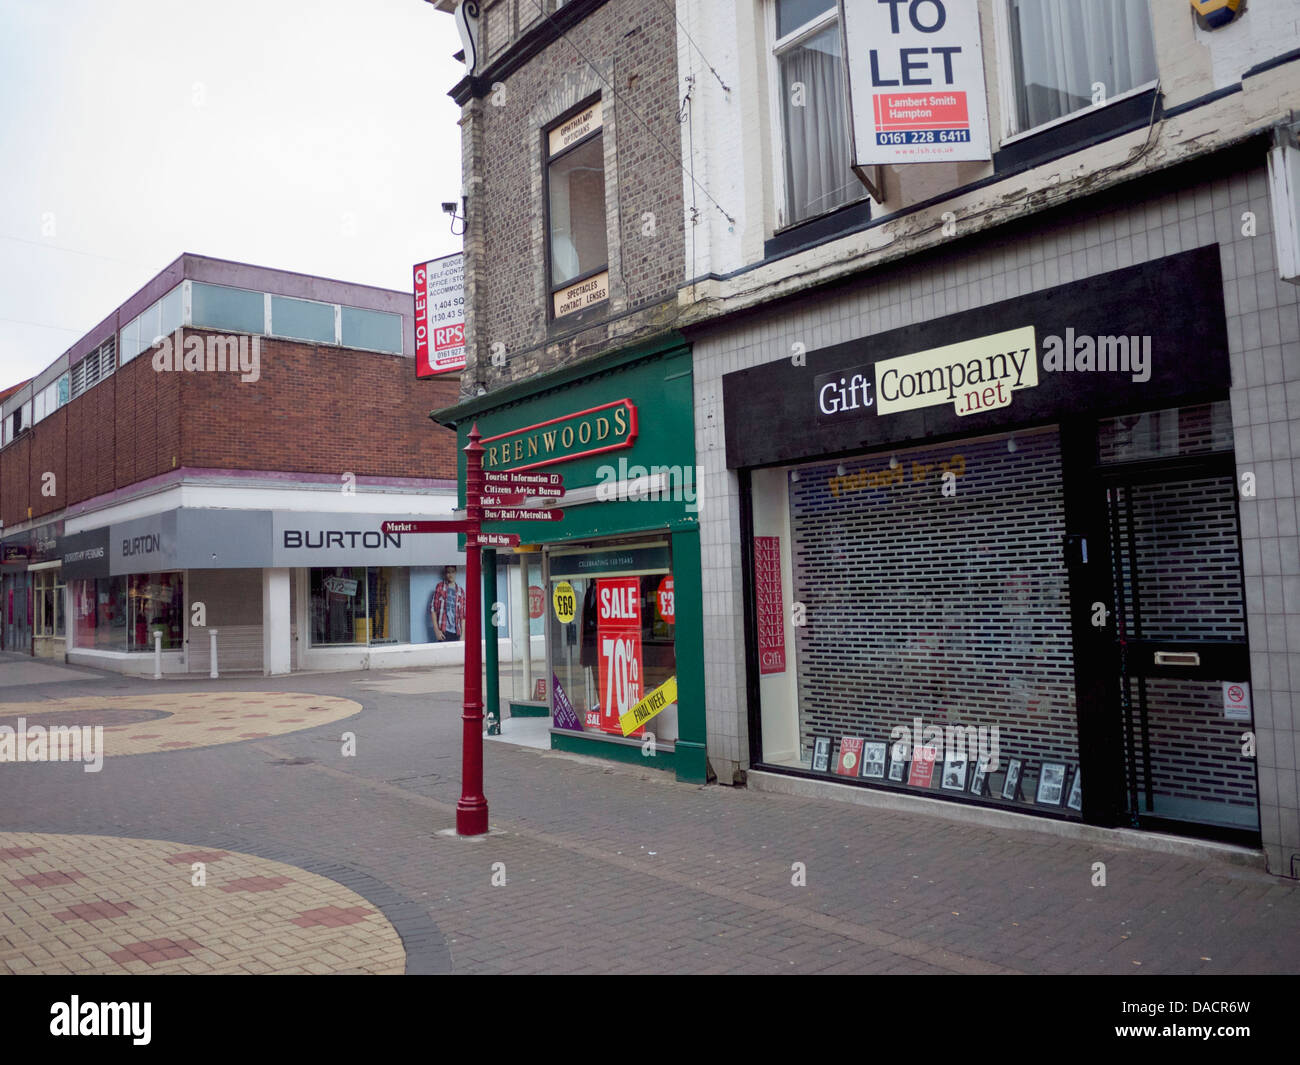 Decline of the high Street, Shop 'To Let' - Stock Image